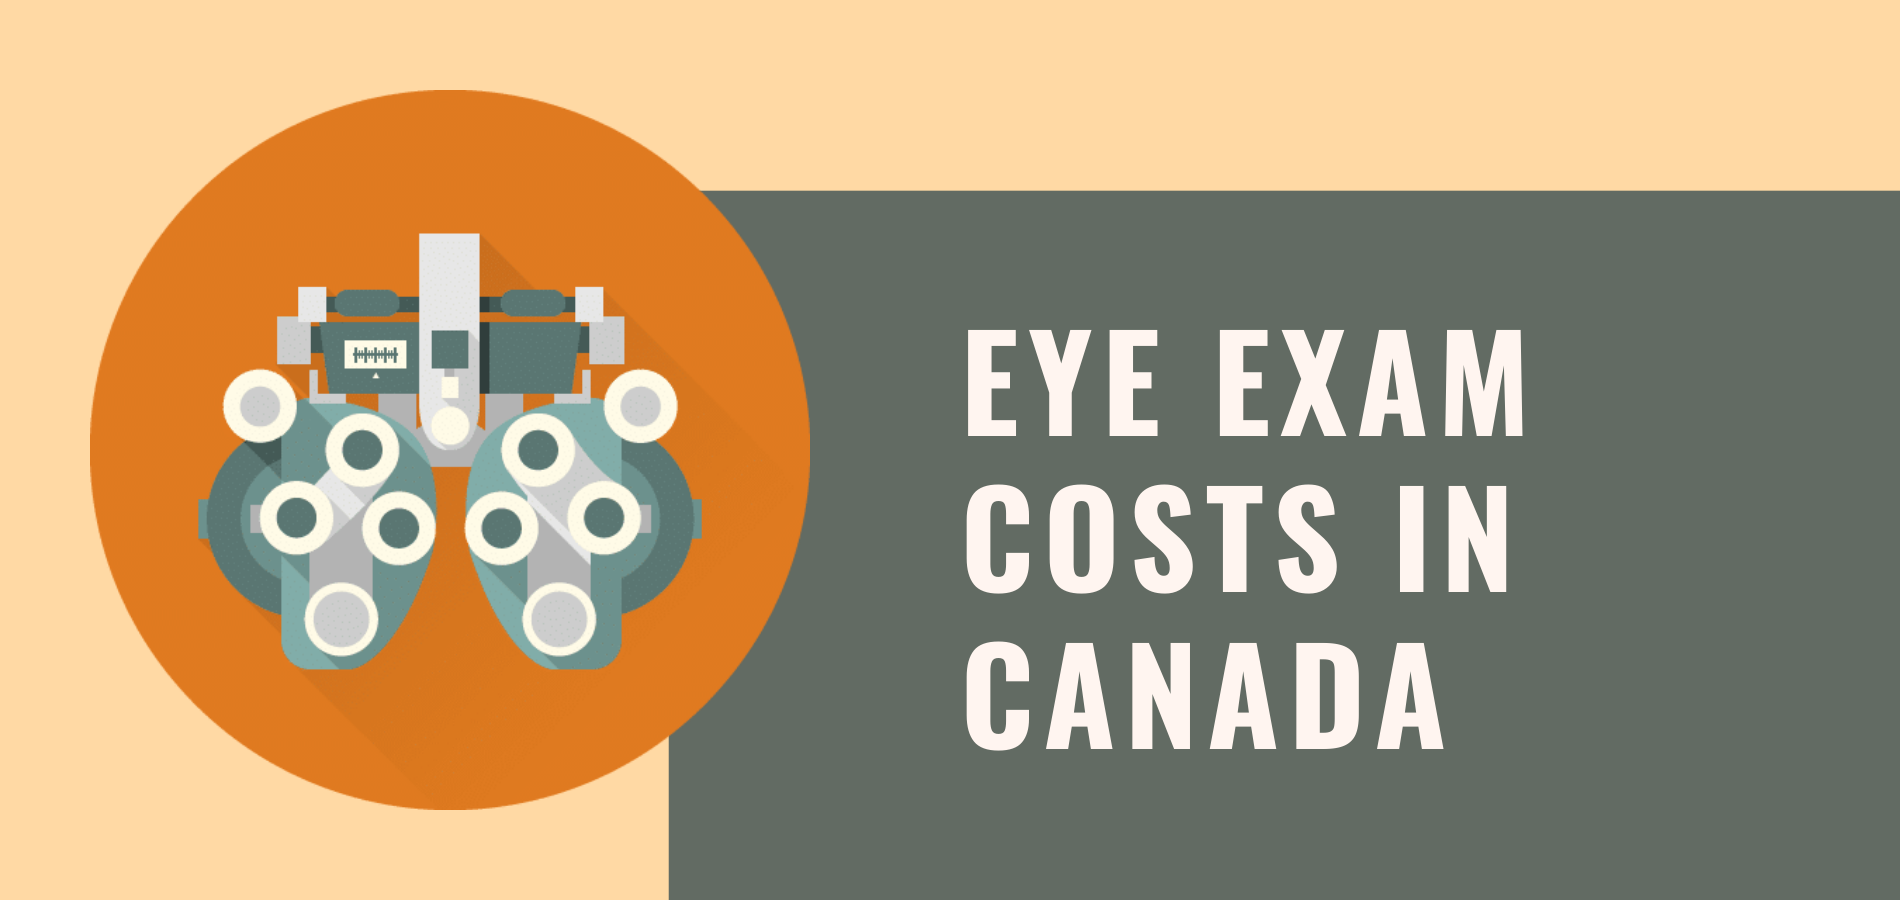 How Much Does An Eye Exam Cost in Canada